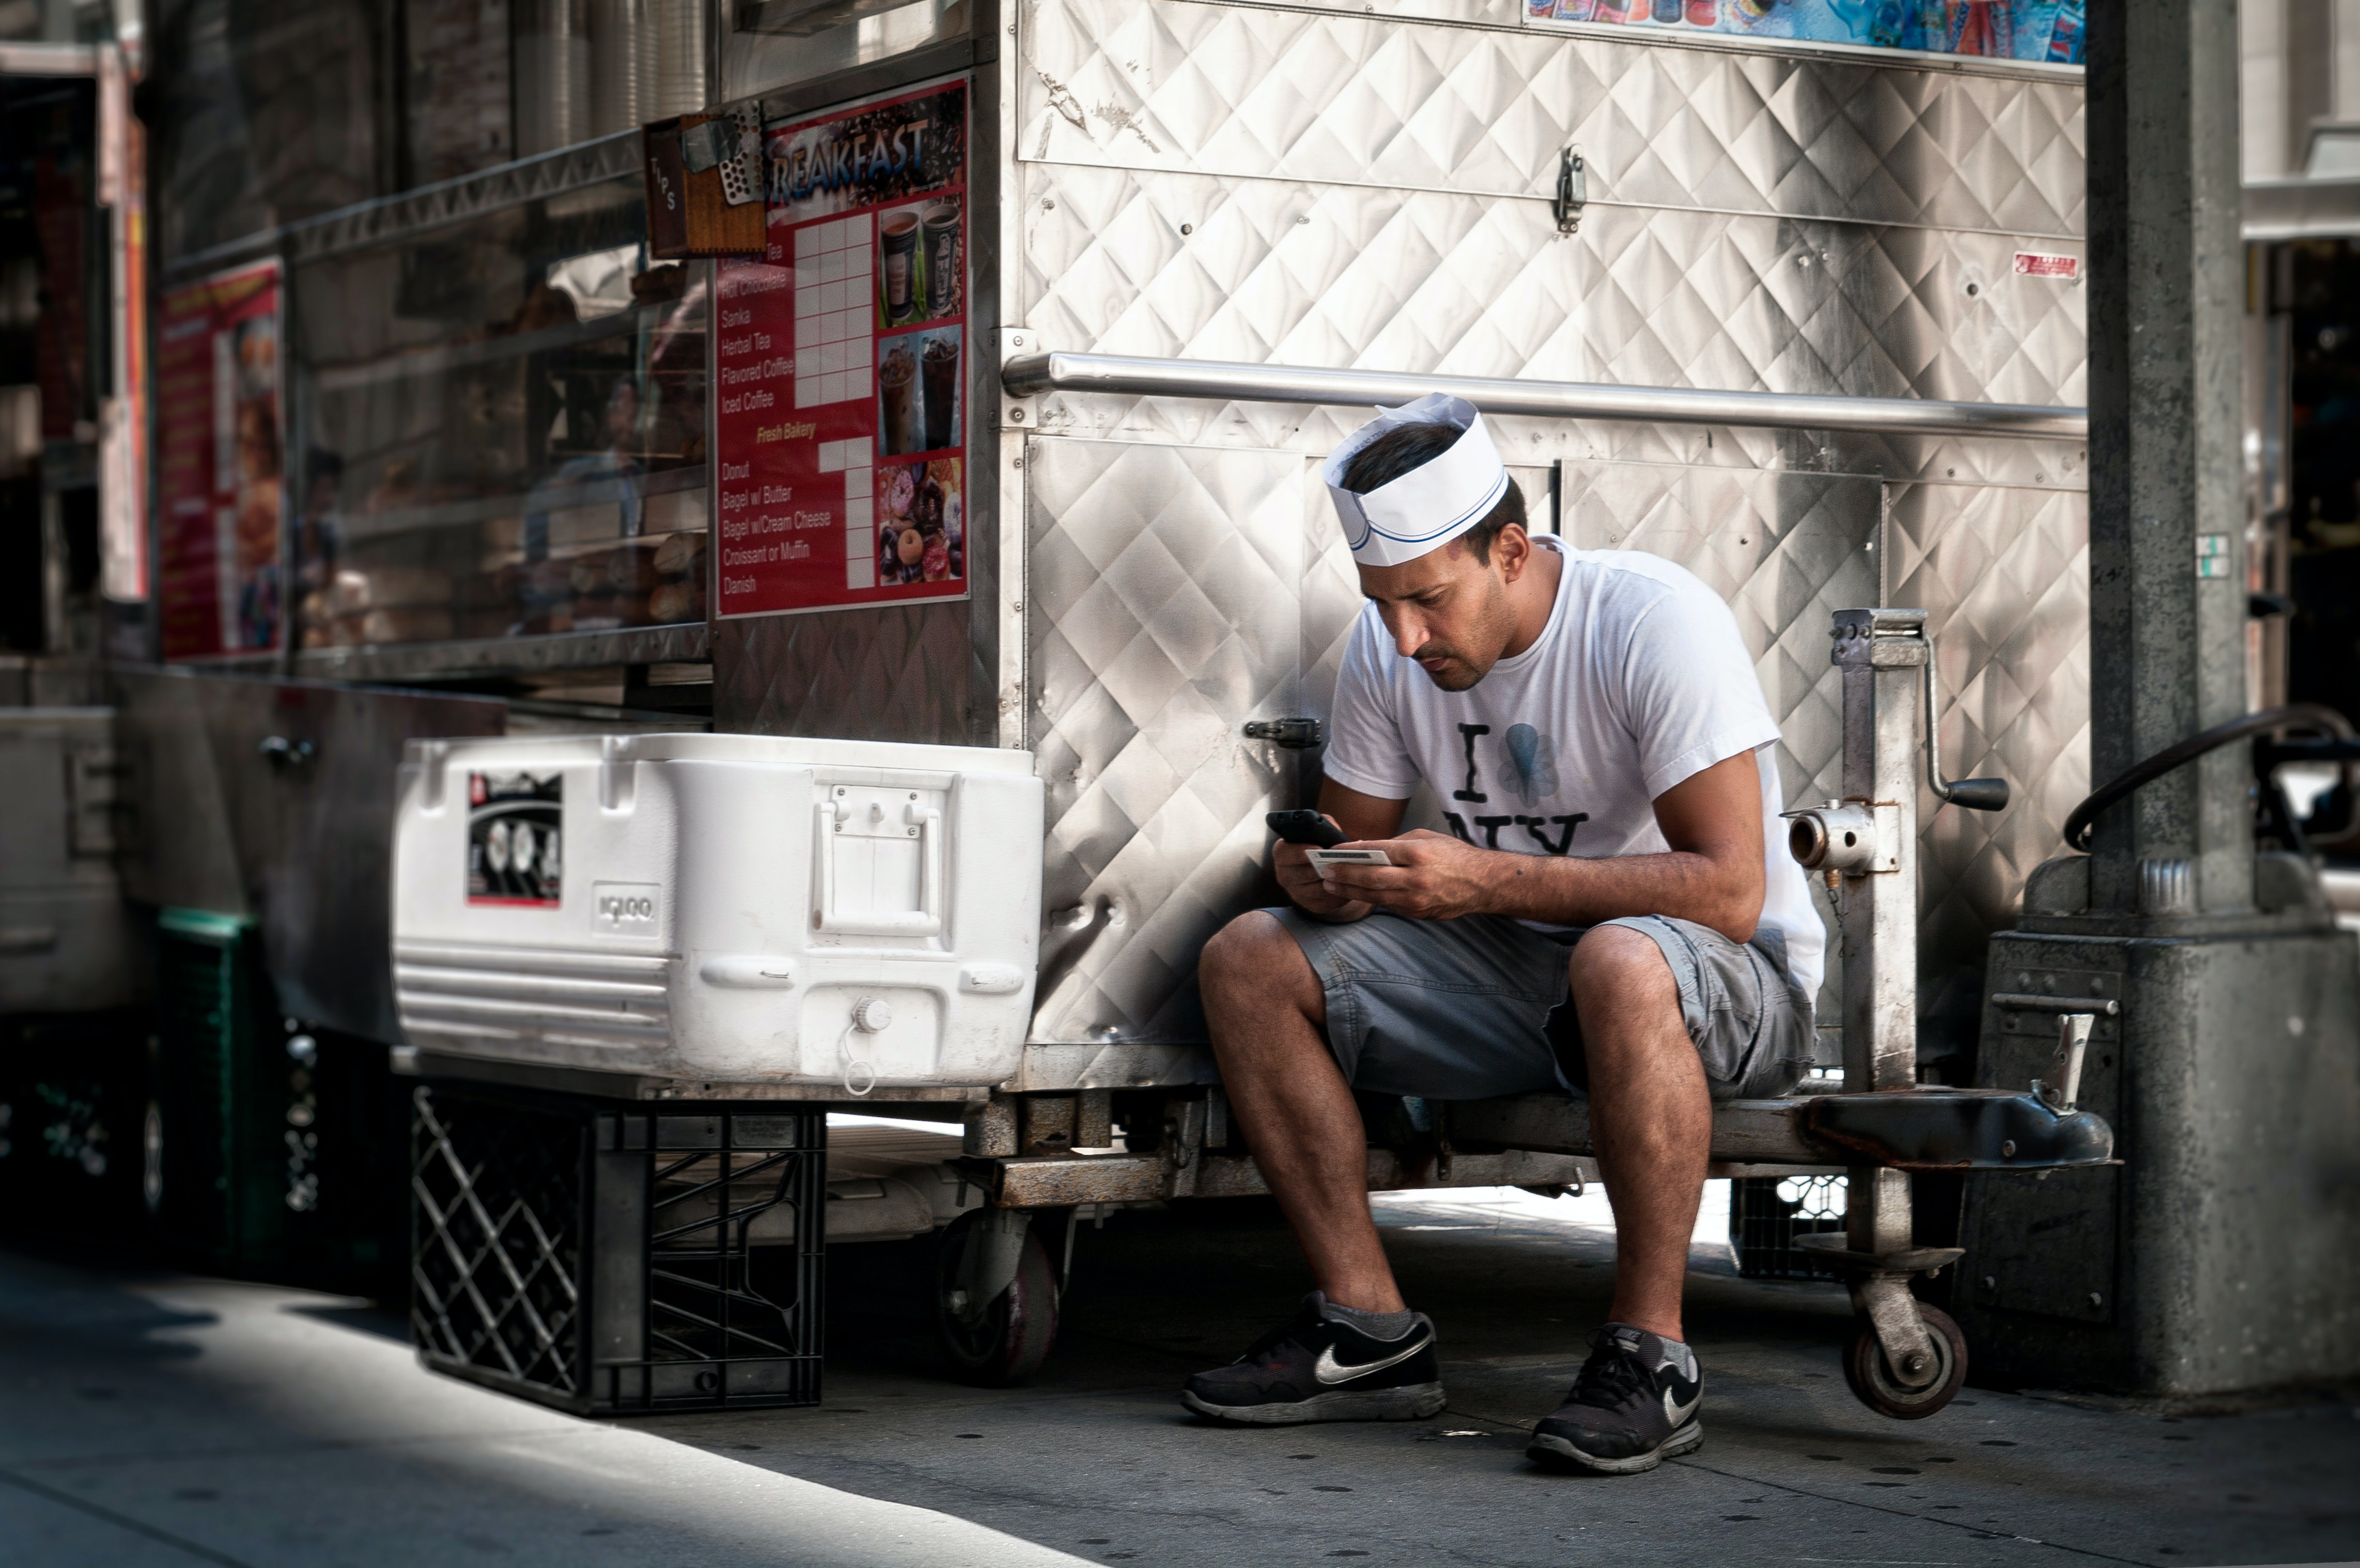 A man sits on the side of a food truck using his cell phone